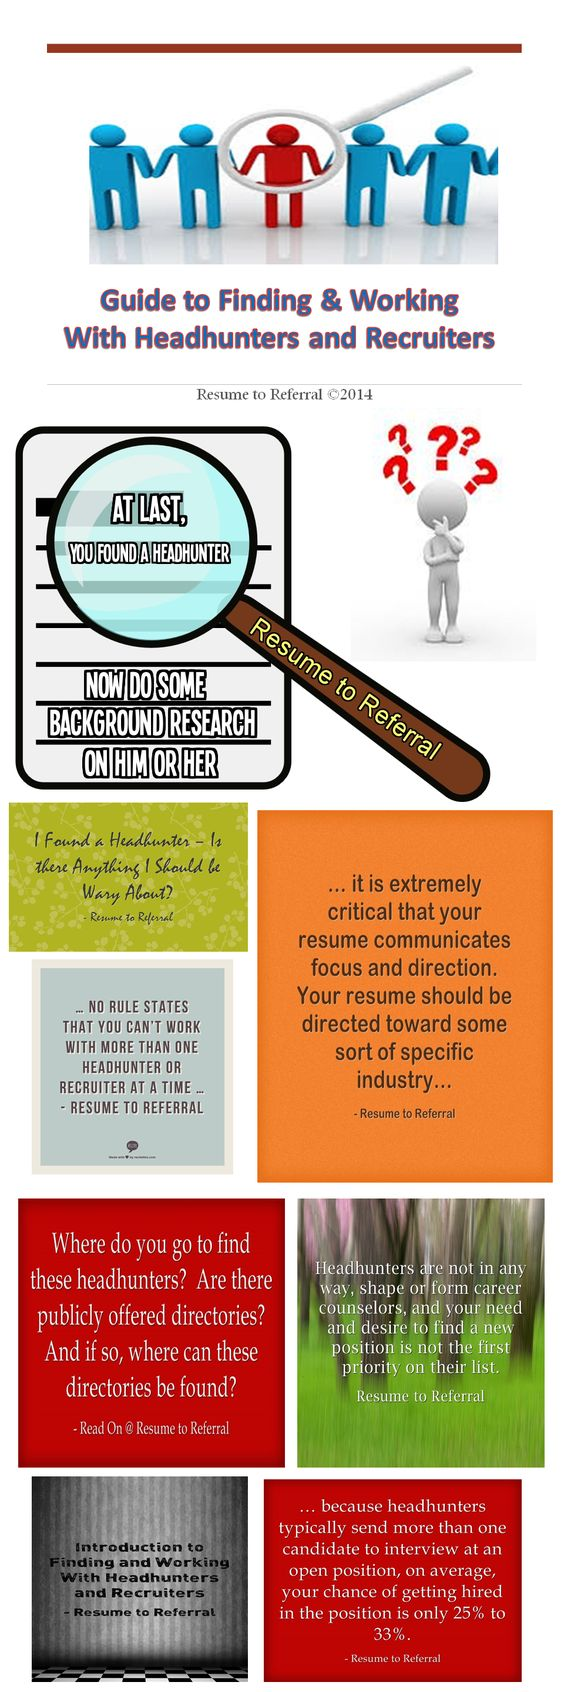 guide to finding working w headhunters recruiters pic guide to finding working headhunters and recruiters infographic